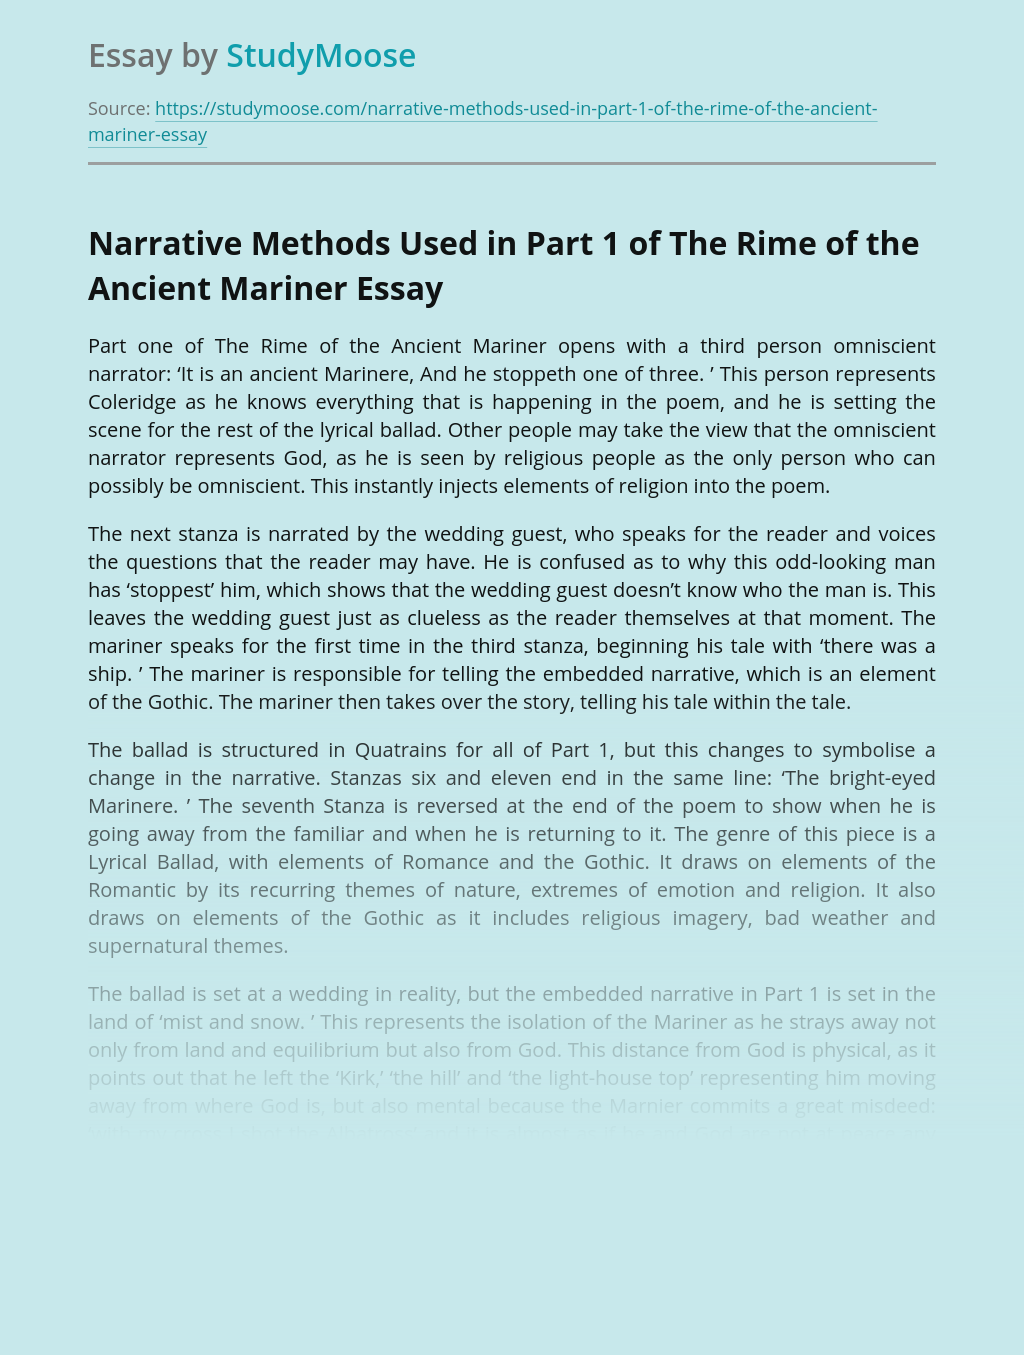 Narrative Methods Used in Part 1 of The Rime of the Ancient Mariner